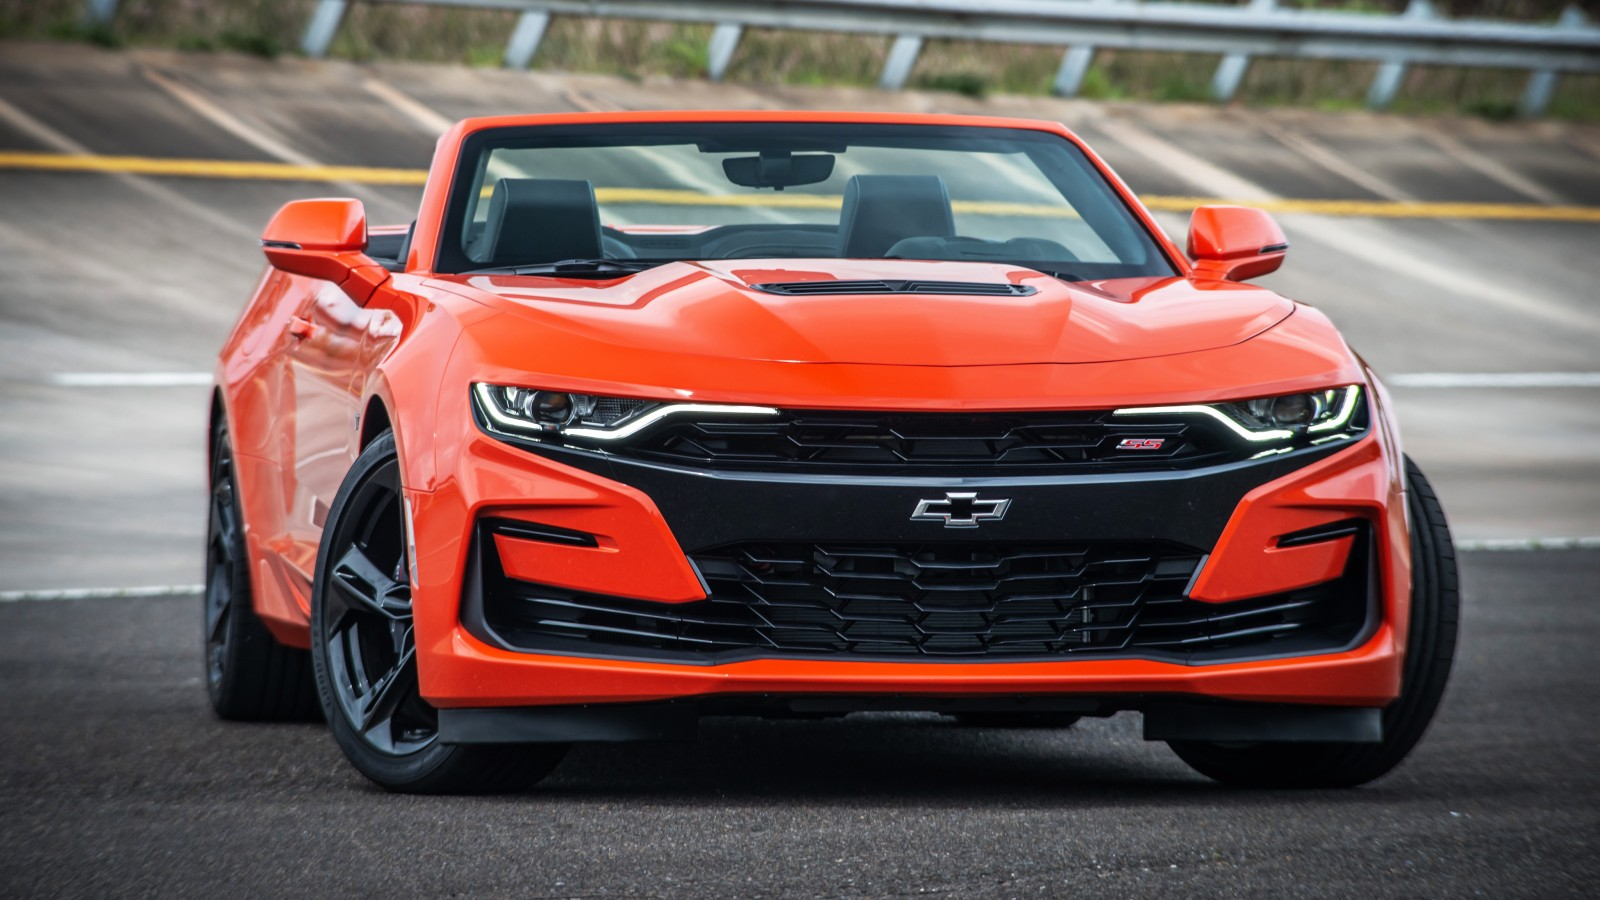 Chevrolet Camaro SS Convertible 2019 4K Wallpaper | HD Car ...